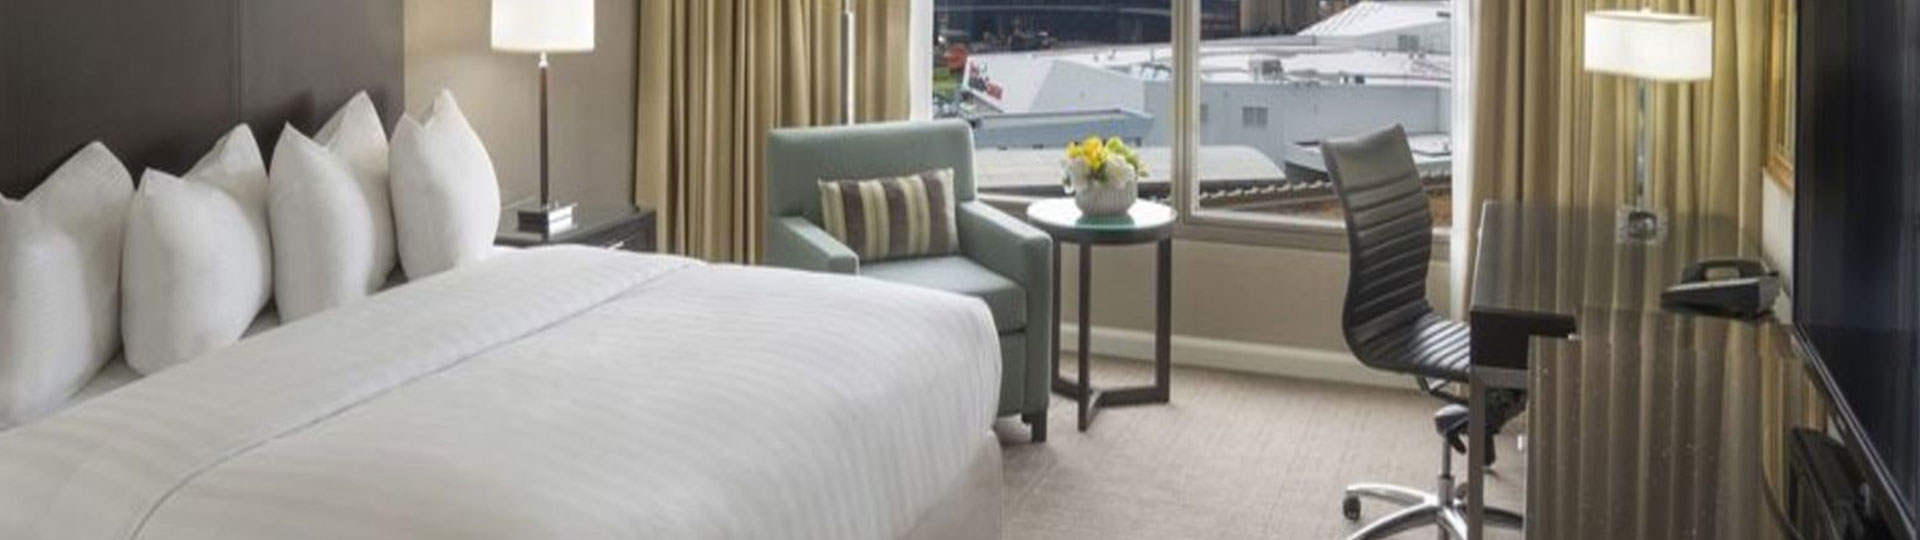 Intercontinental Toronto Centre, Ontario - Daily Parking Package